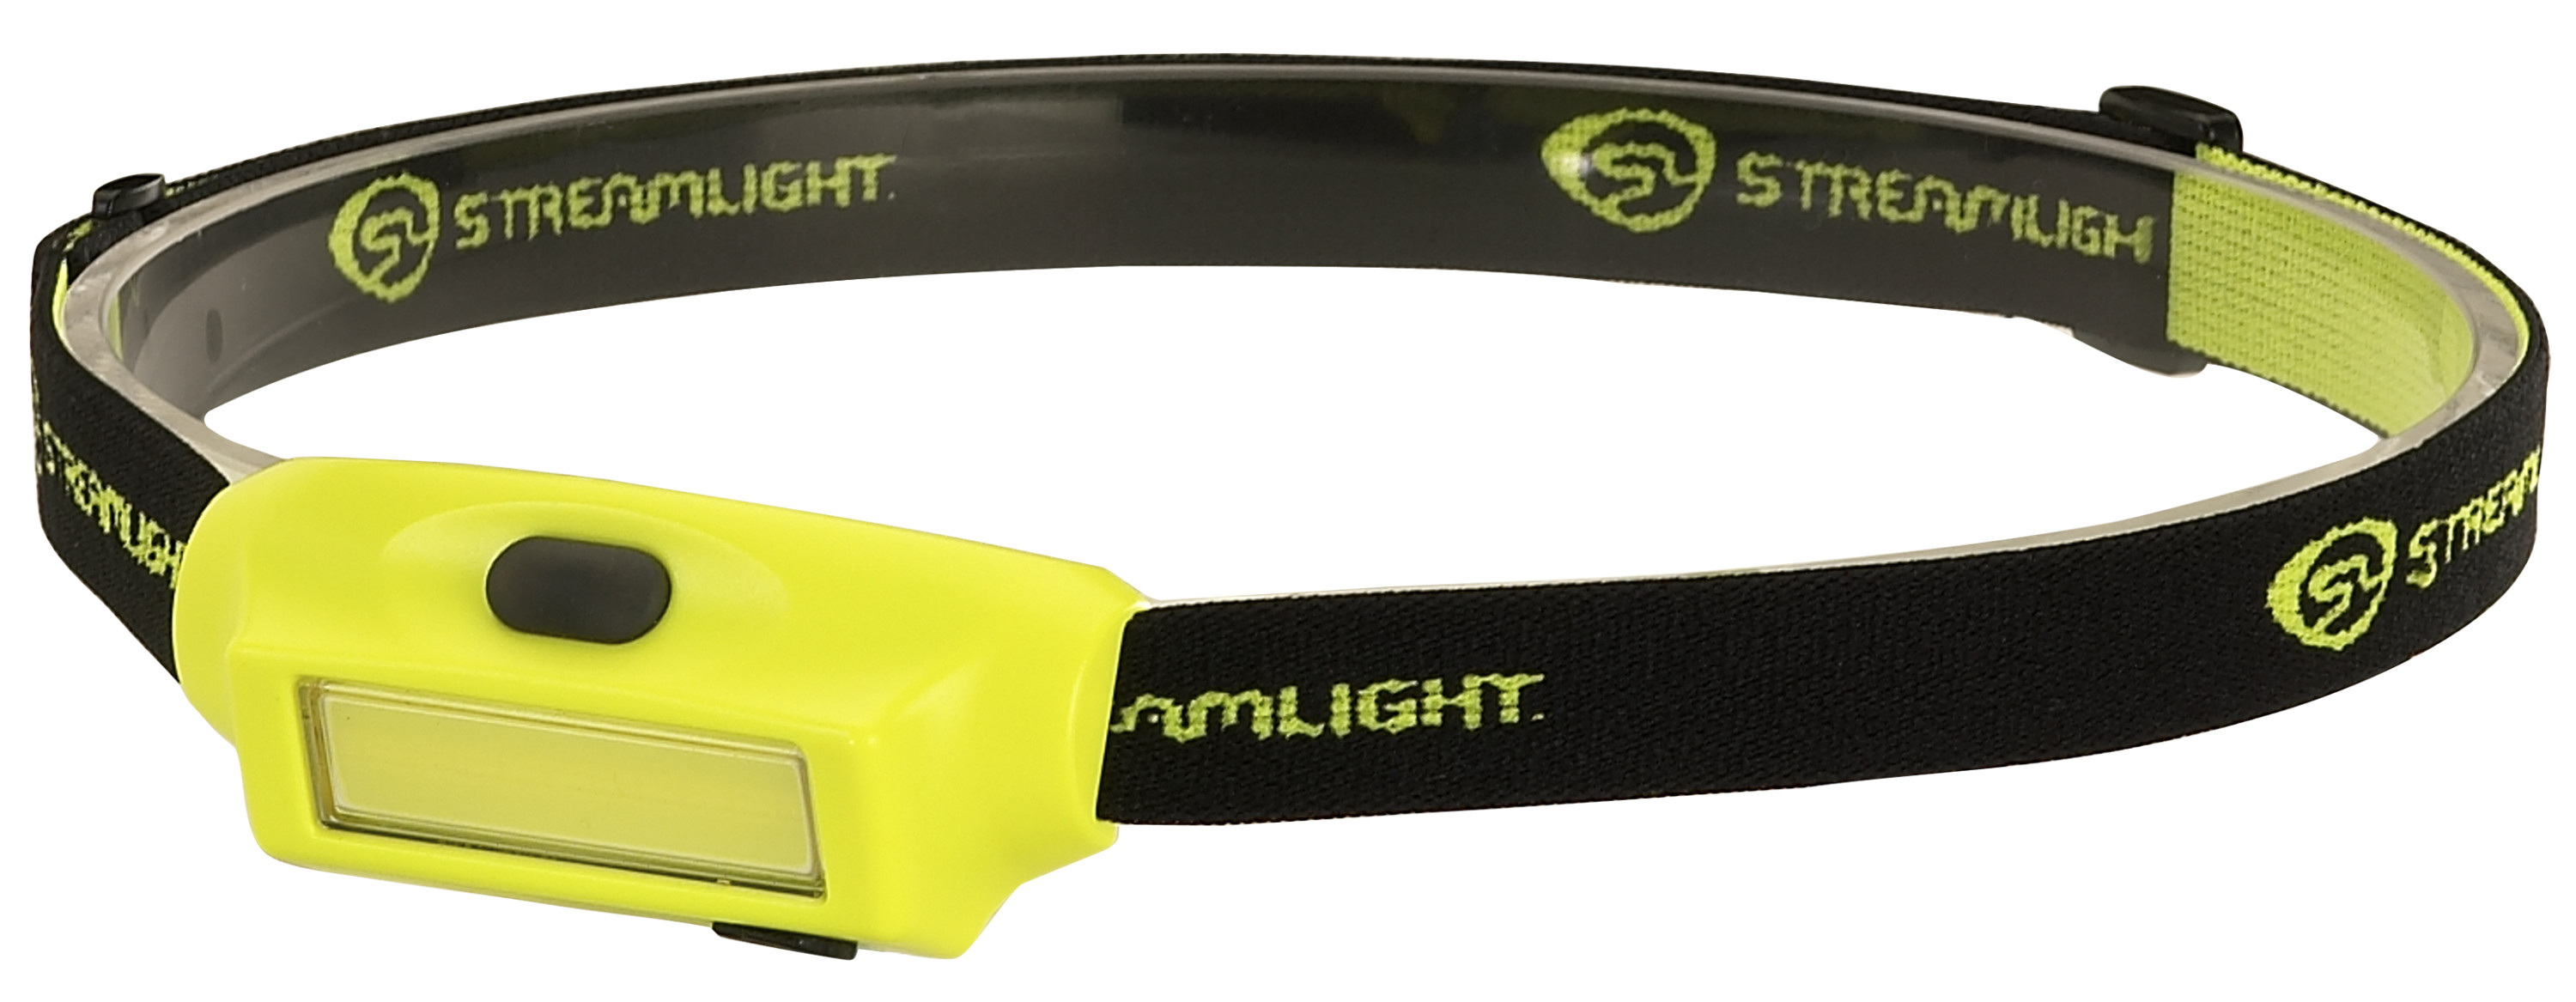 Streamlight Bandit Lightweight LED Outdoor Headlamp, Black by Streamlight